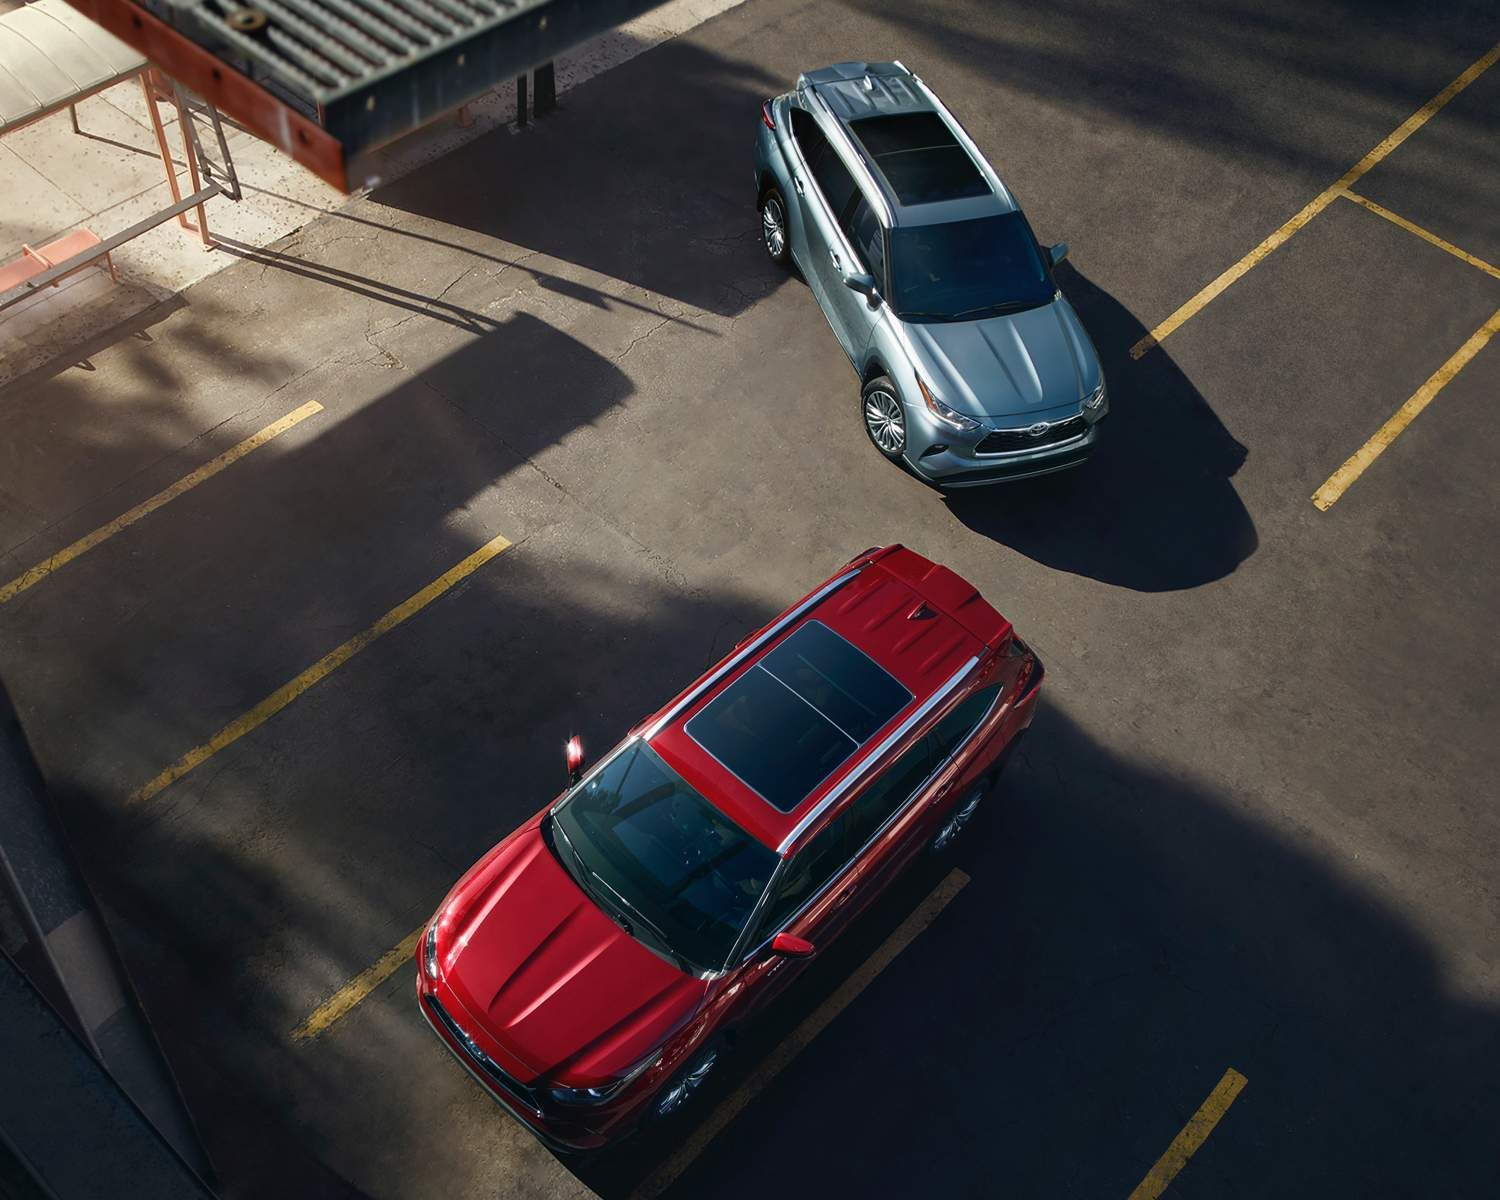 Highlander Hybrid shown in Ruby Red Pearl & Highlander Platinum shown in Moondust